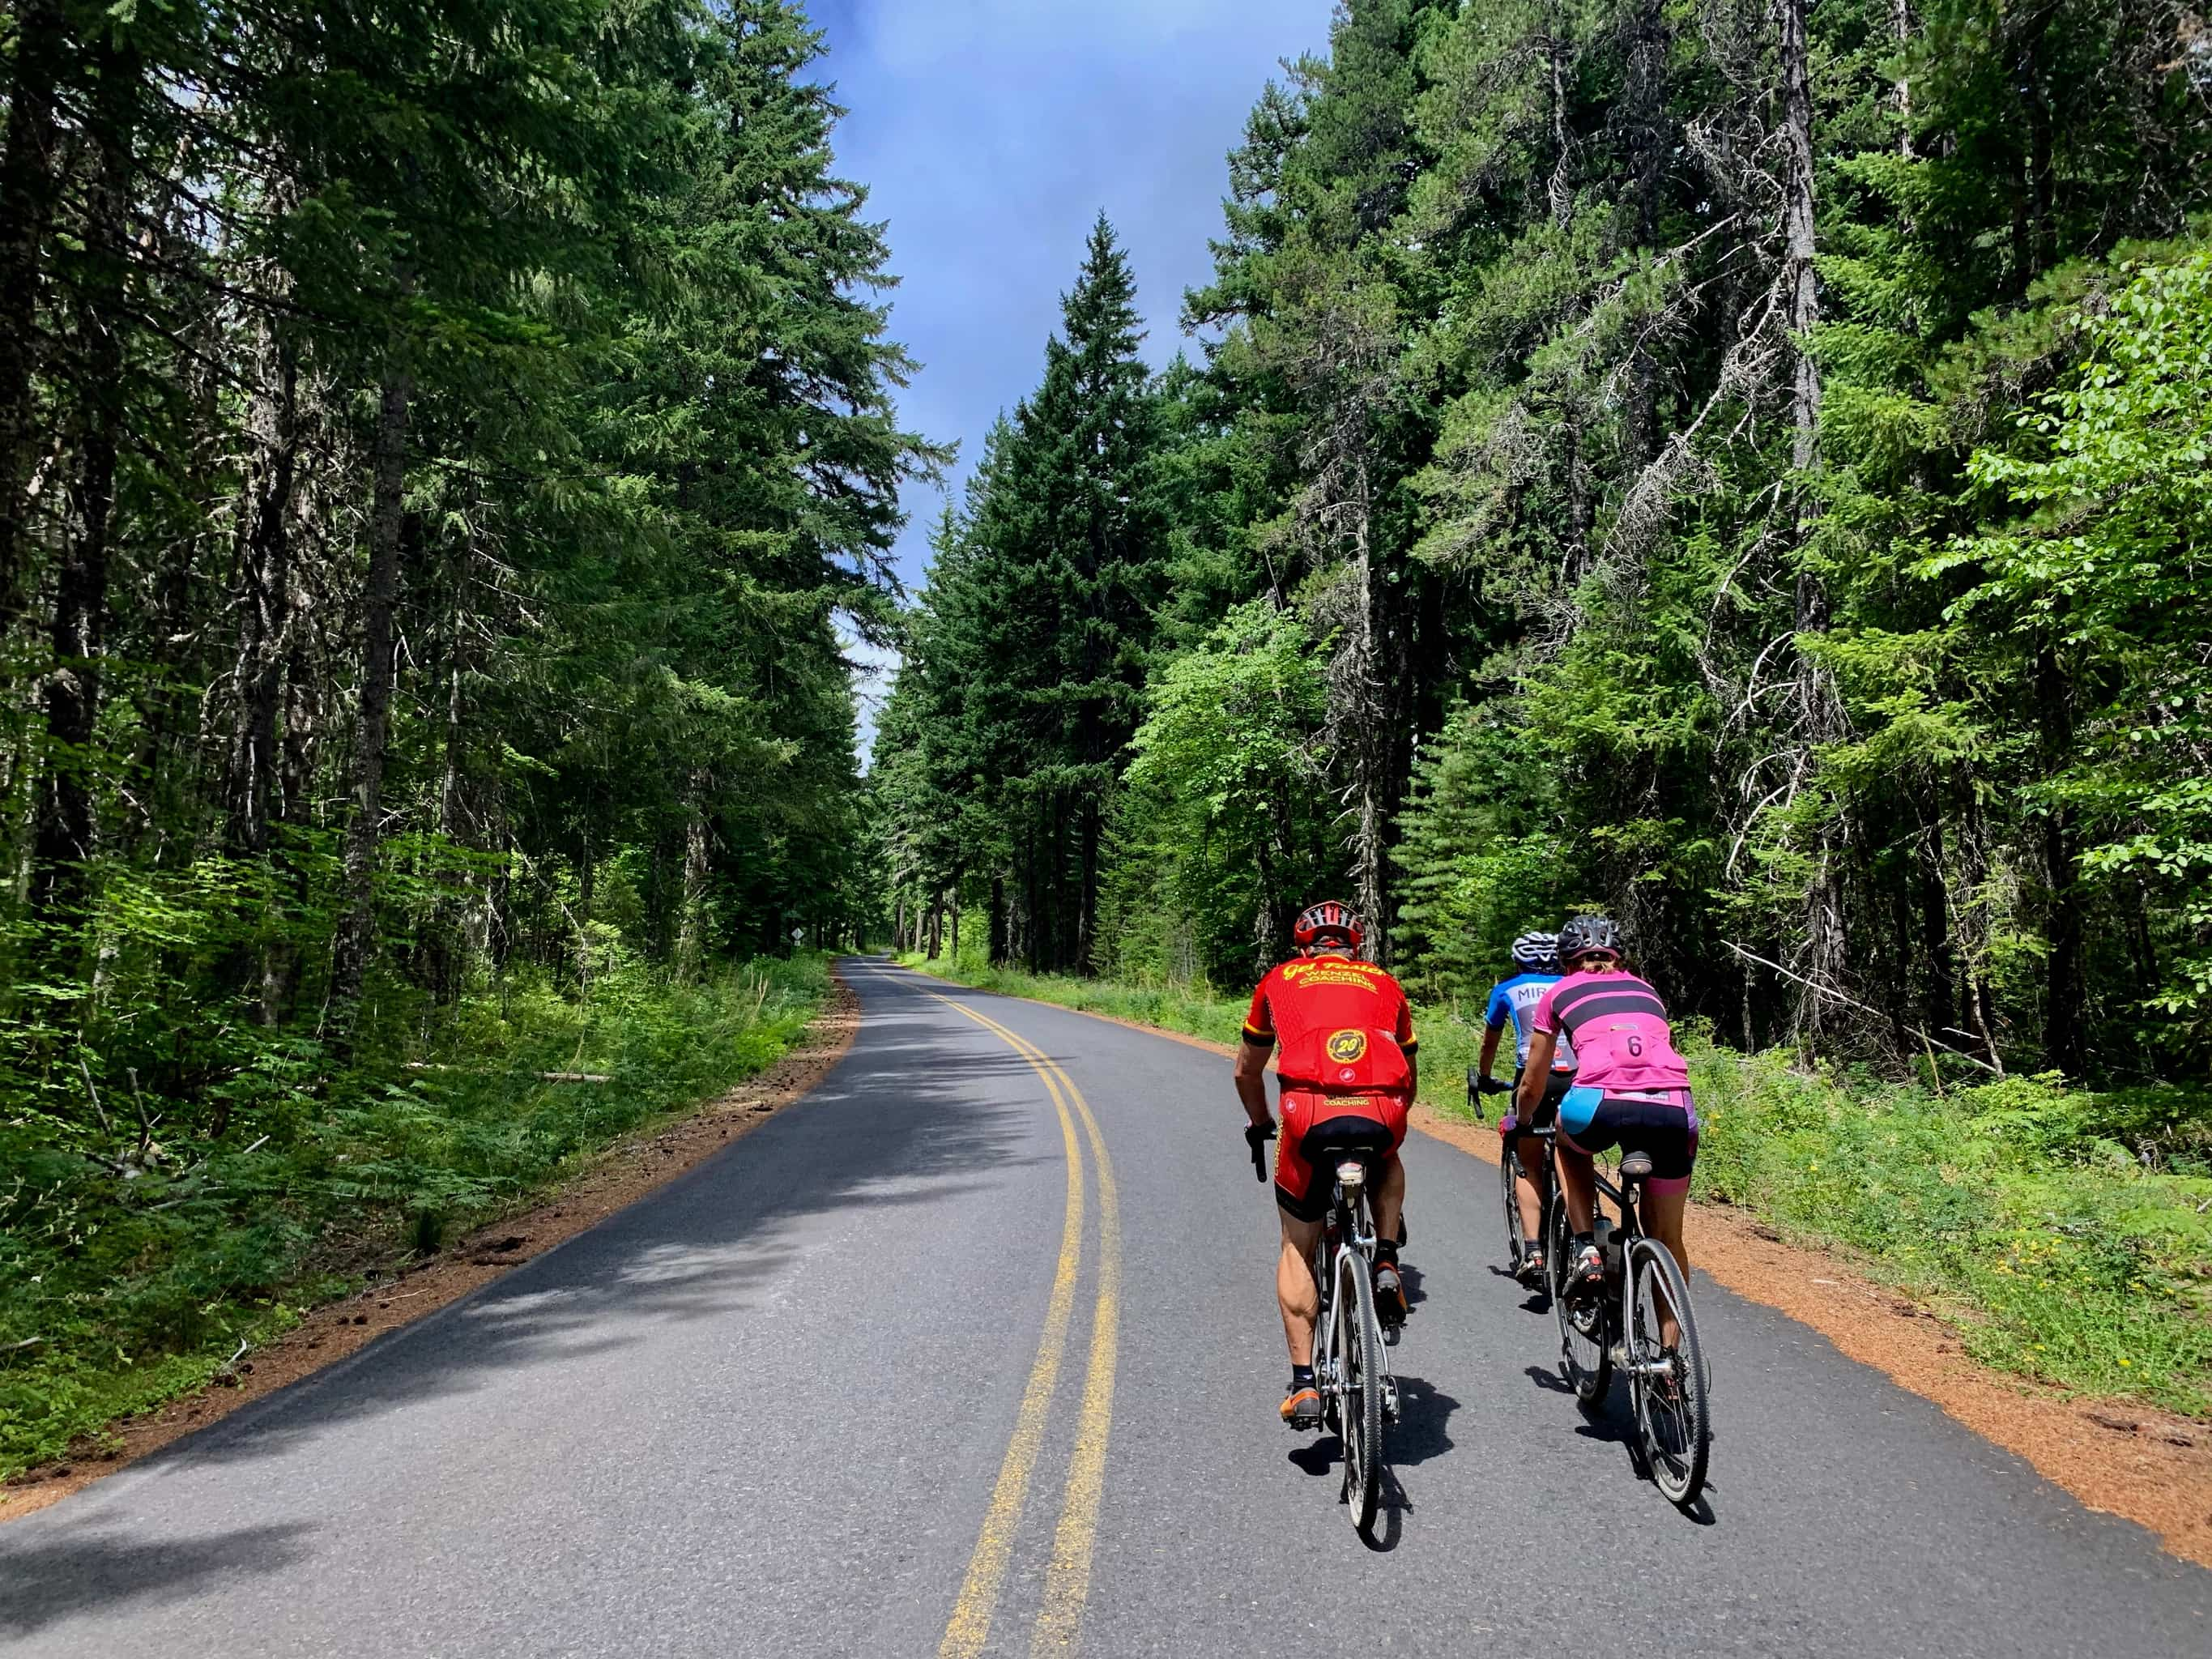 Cyclists on paved road NF-66 near the Big Lava Bed in the Gifford Pinchot National Forest.